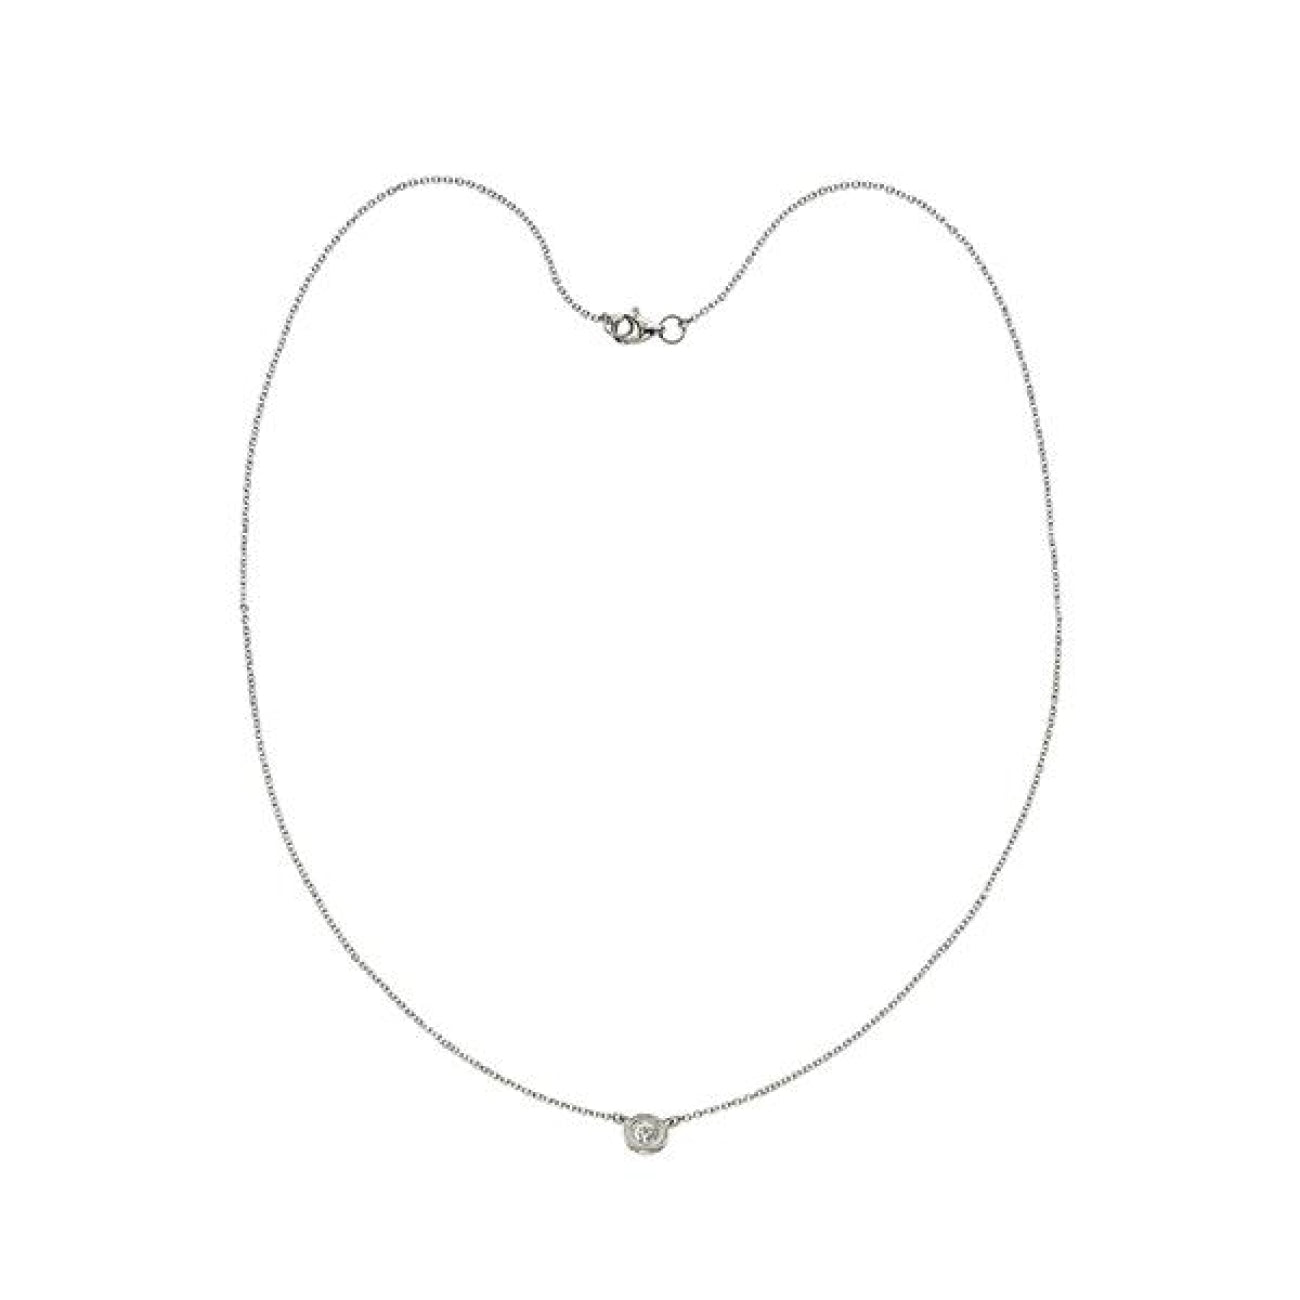 Manfredi Jewels Jewelry - Single Stone Diamond Necklace | Manfredi Jewels